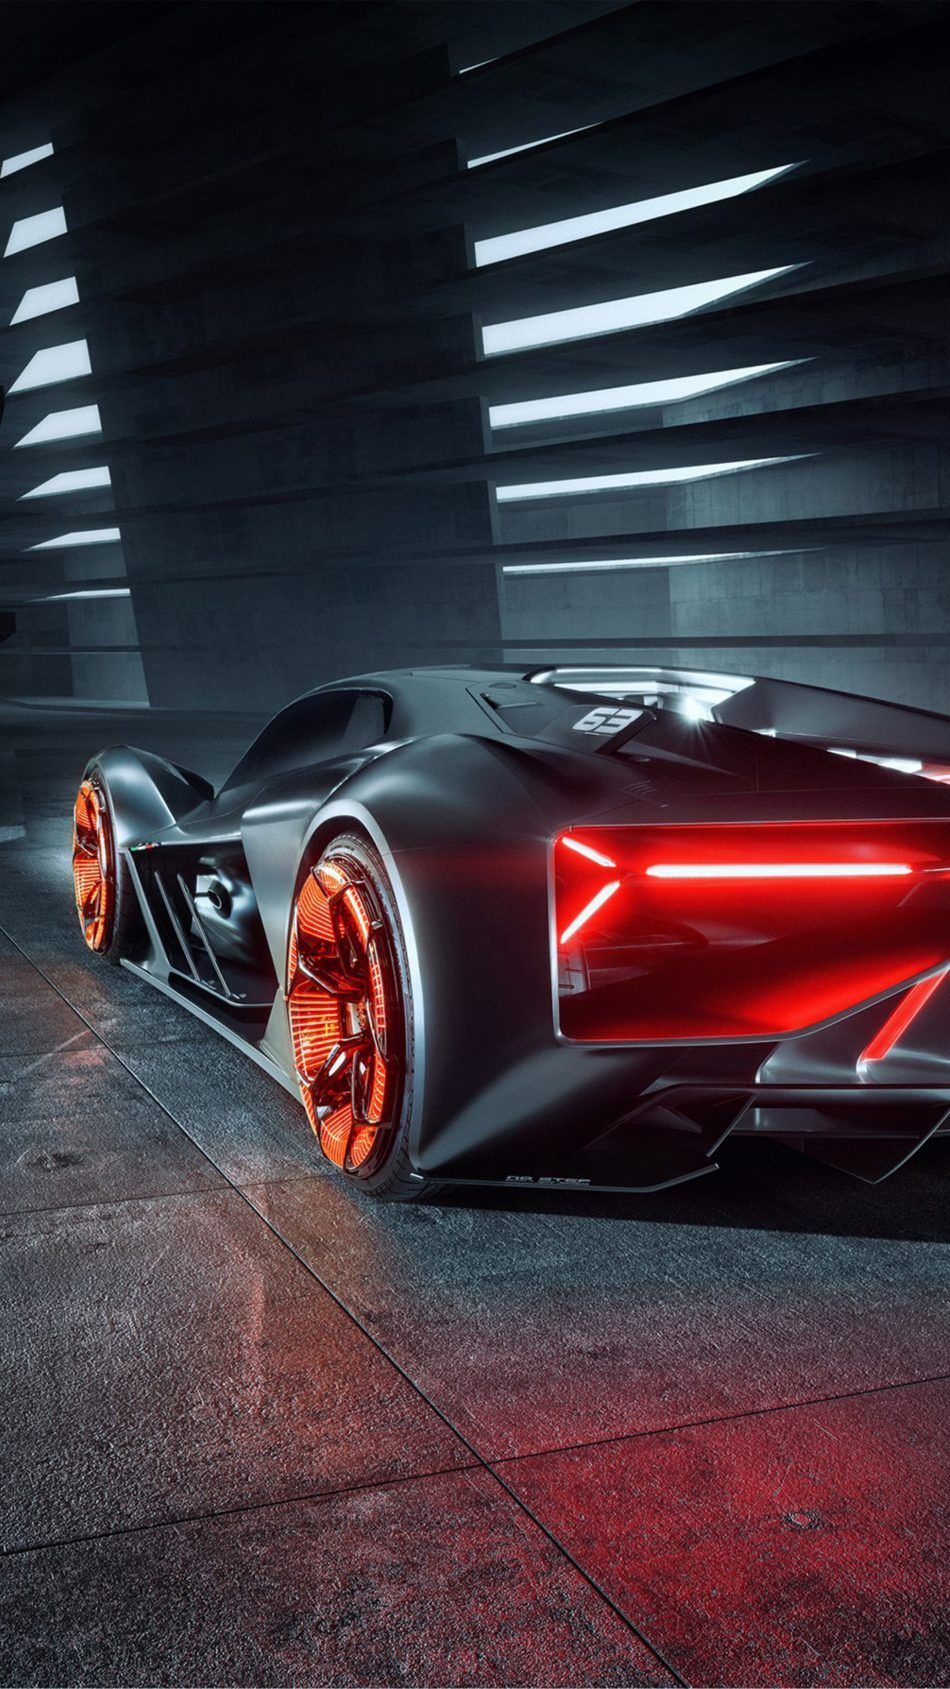 Ultra Hd Car Wallpapers Posted By Zoey Mercado